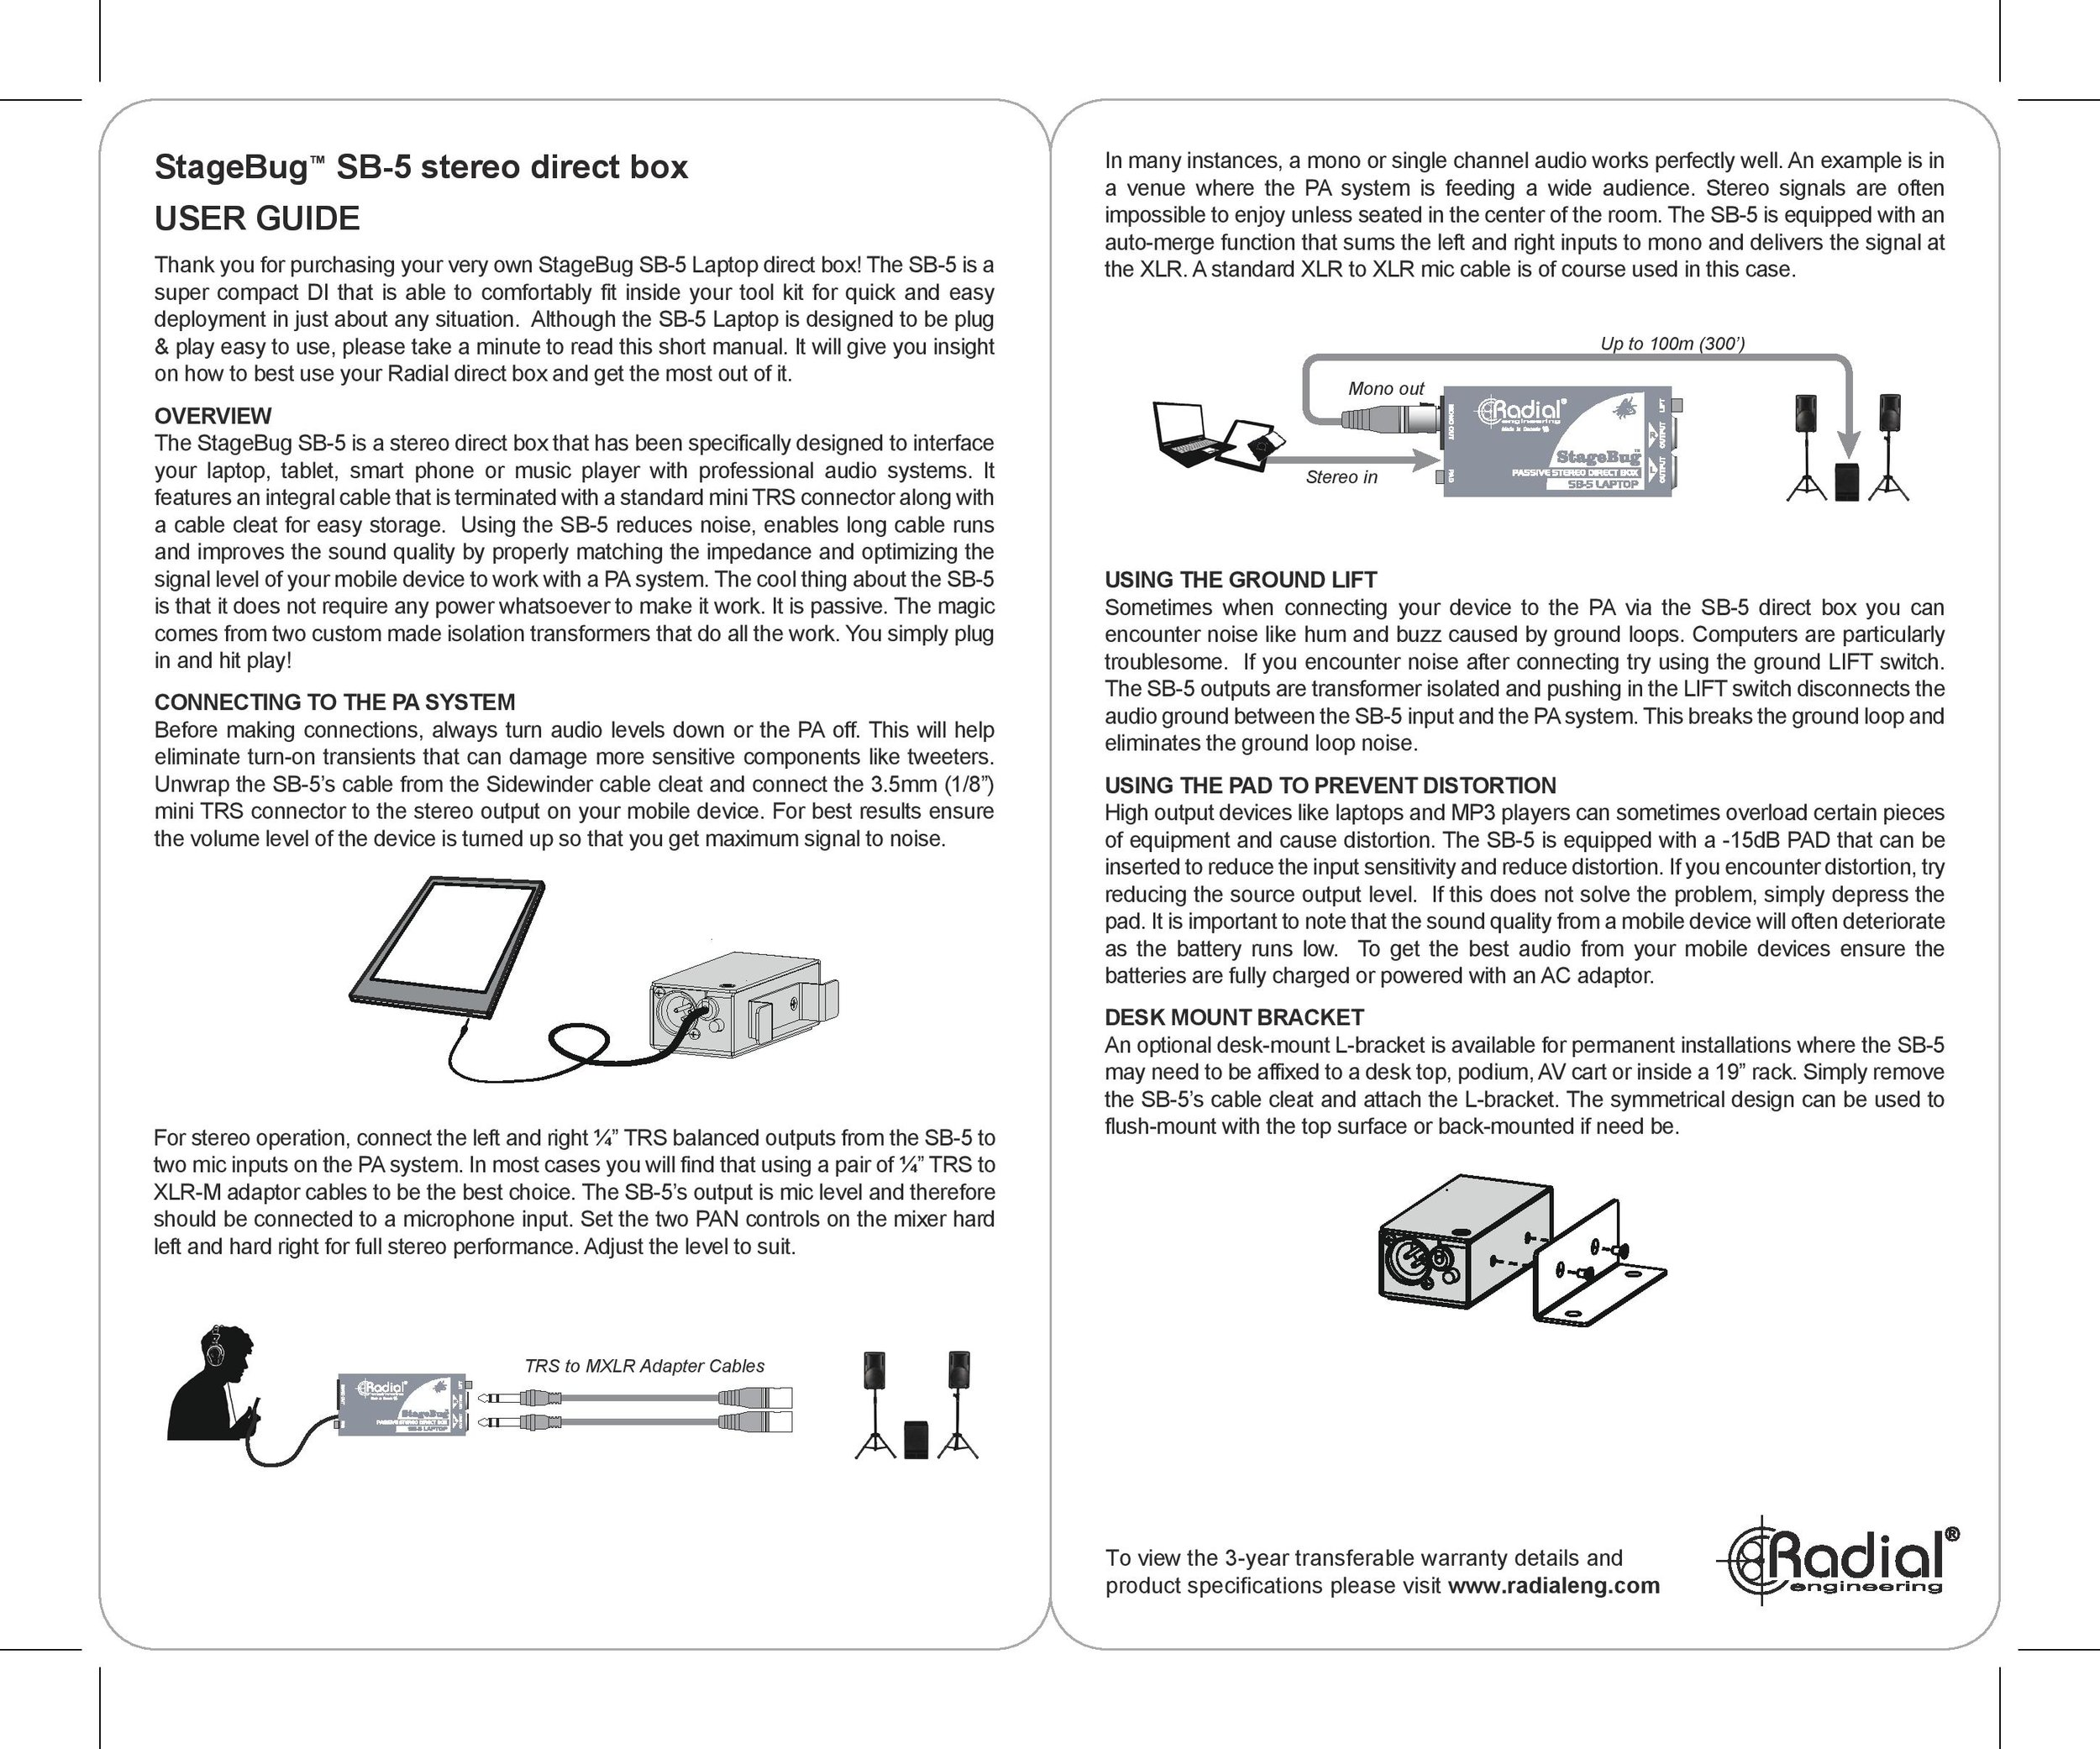 StageBug-SB-5-stereo-User-Guide-page-001.jpg